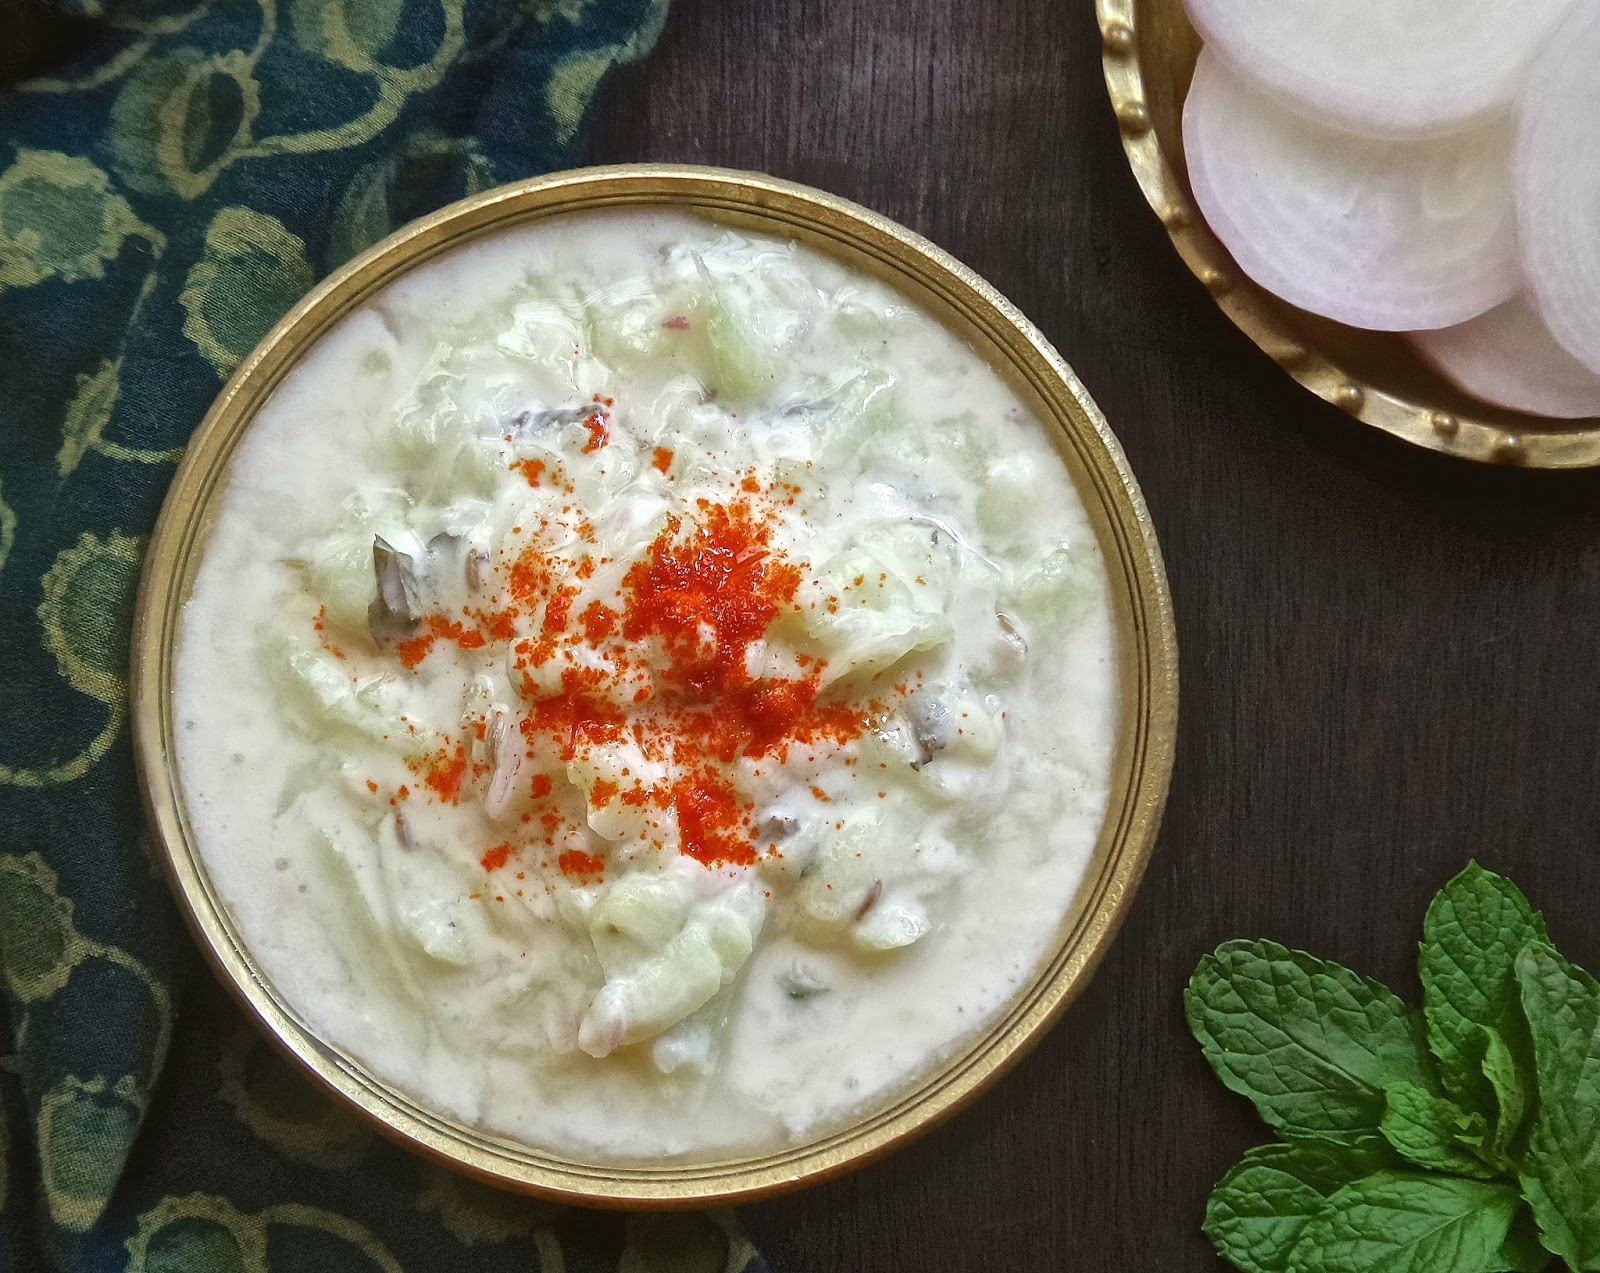 cucumber and mint raita, recipe, vegetarian, easy, cucumber, mint, cumin, yoghurt, chili, raita, cool, dip, condiment, salad,